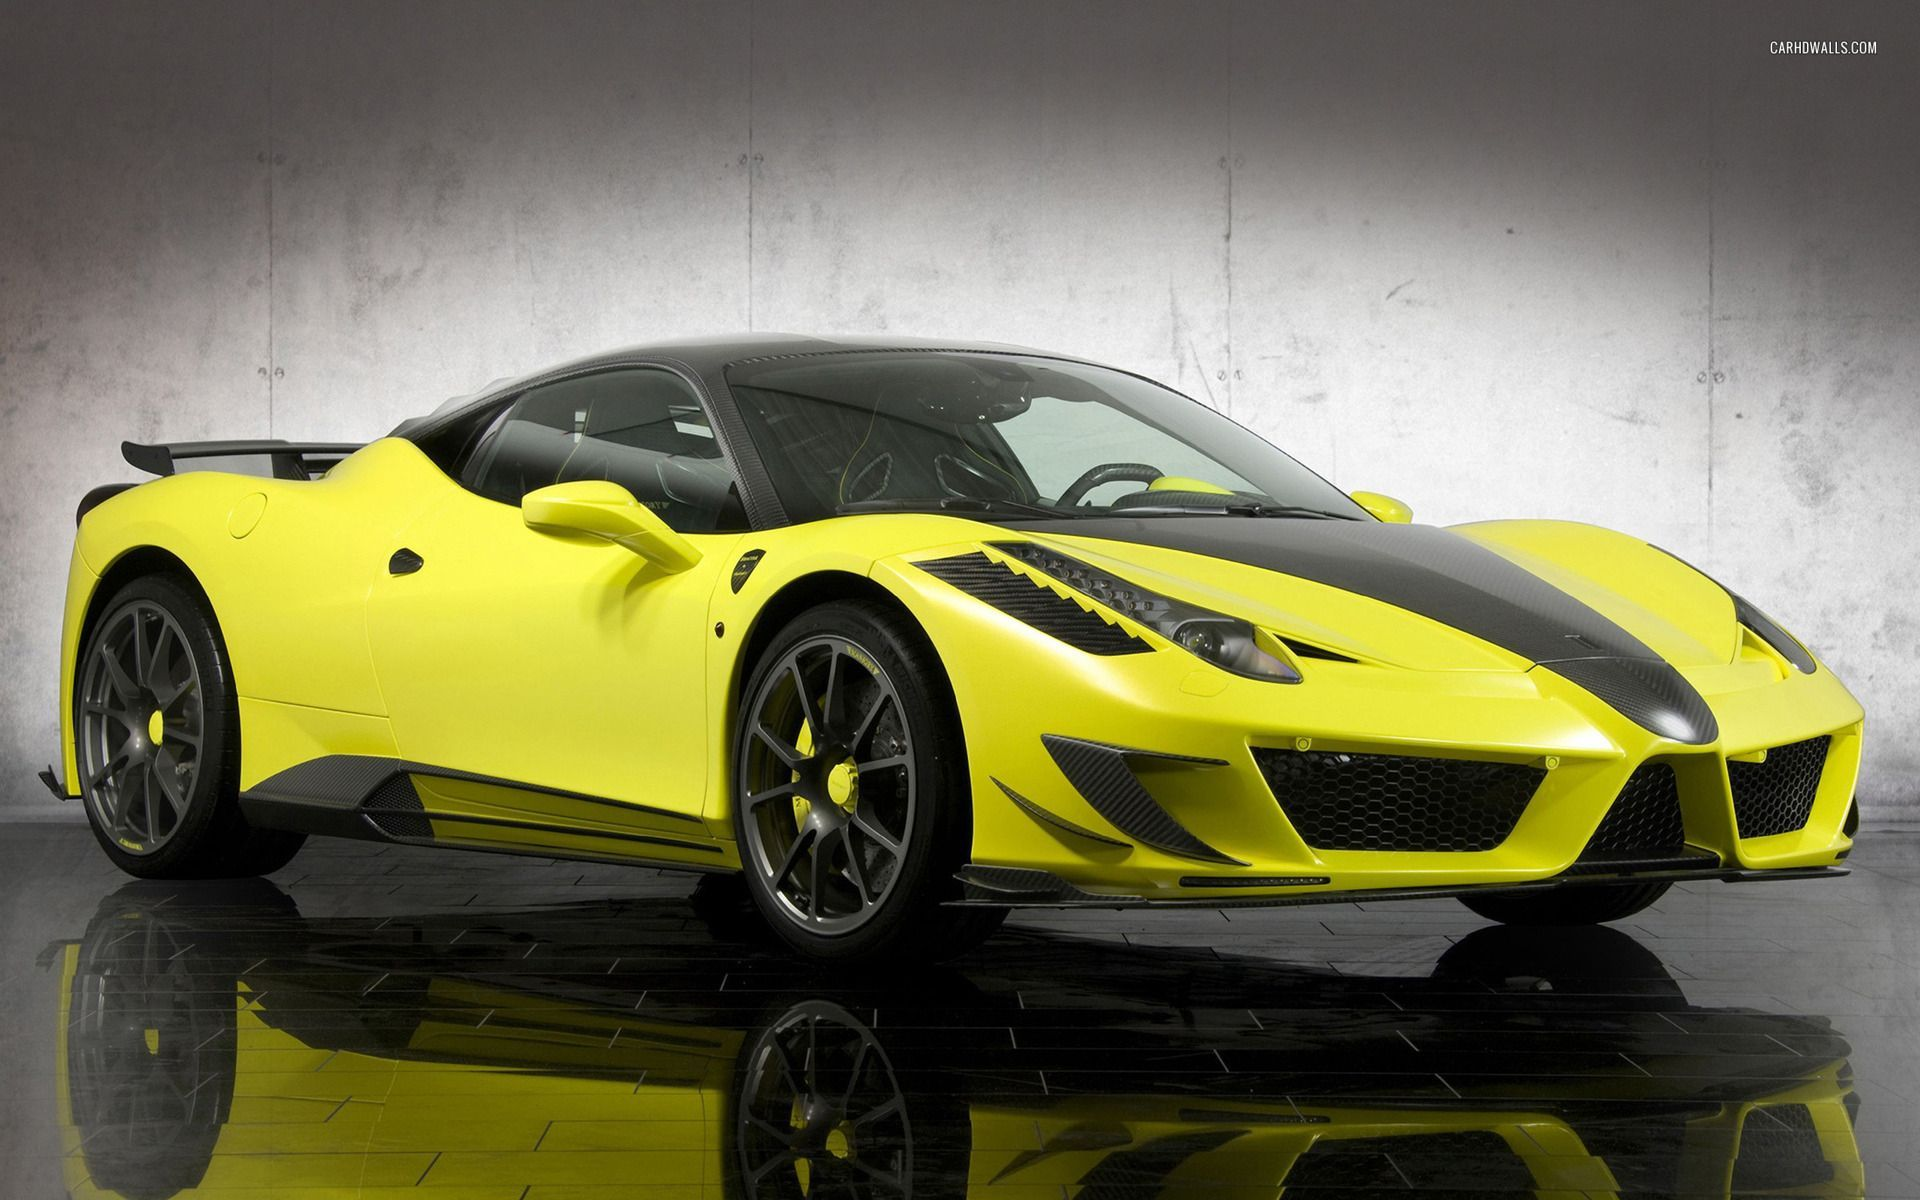 Ferrari 458 Spider Wallpapers In Best Px Resolutions Mansory 458 1920x1200 Wallpaper Teahub Io